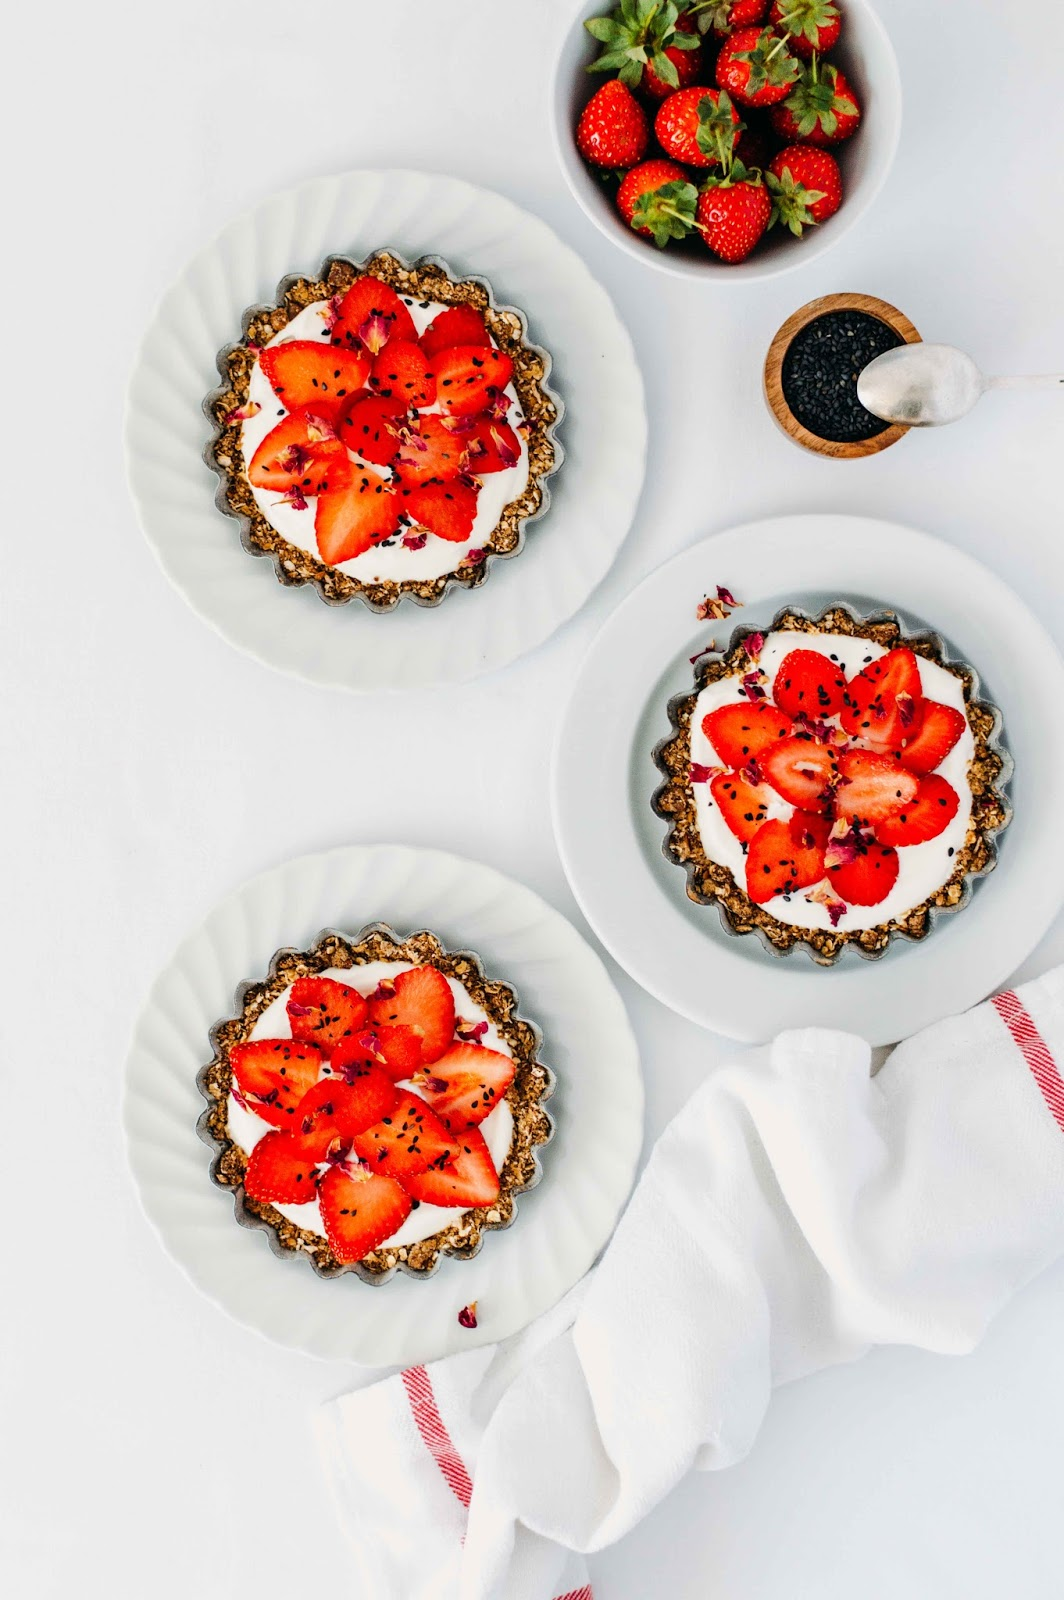 Oats, Cardamom and Strawberries Tartelettes | https://oandrajos.blogspot.com